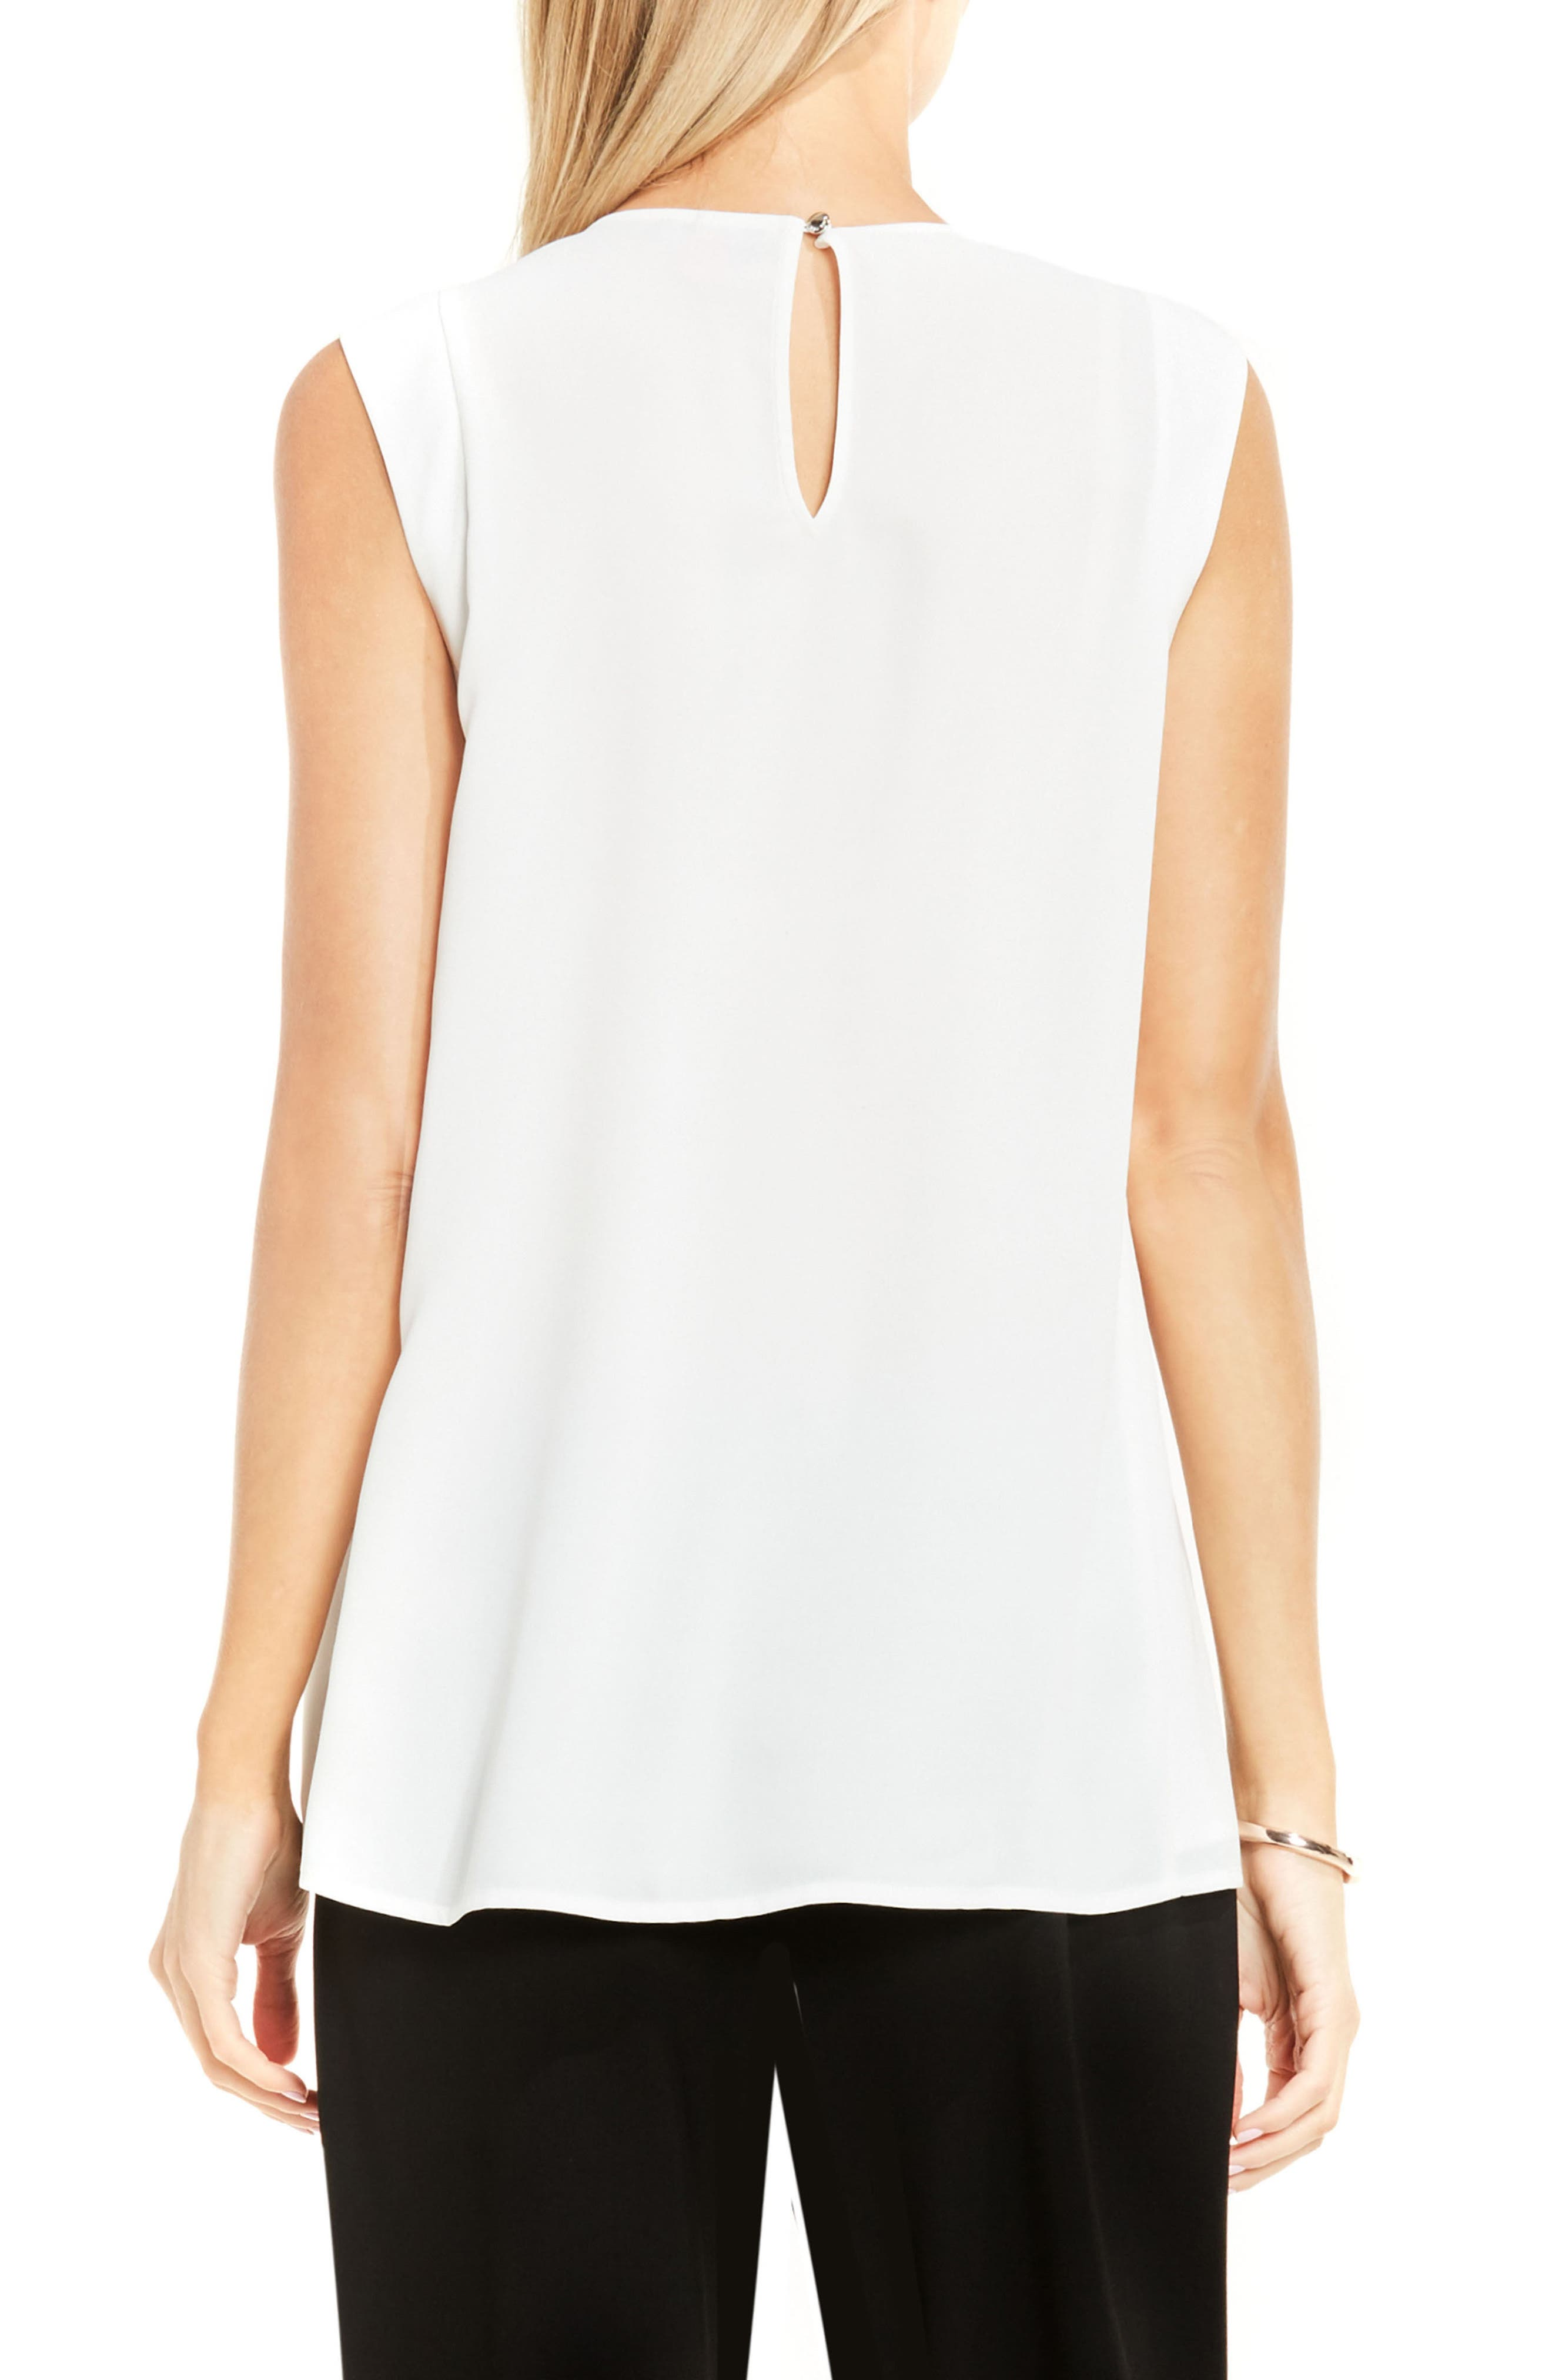 Alternate Image 2  - Vince Camuto Pleat Neck Blouse (Regular & Petite)